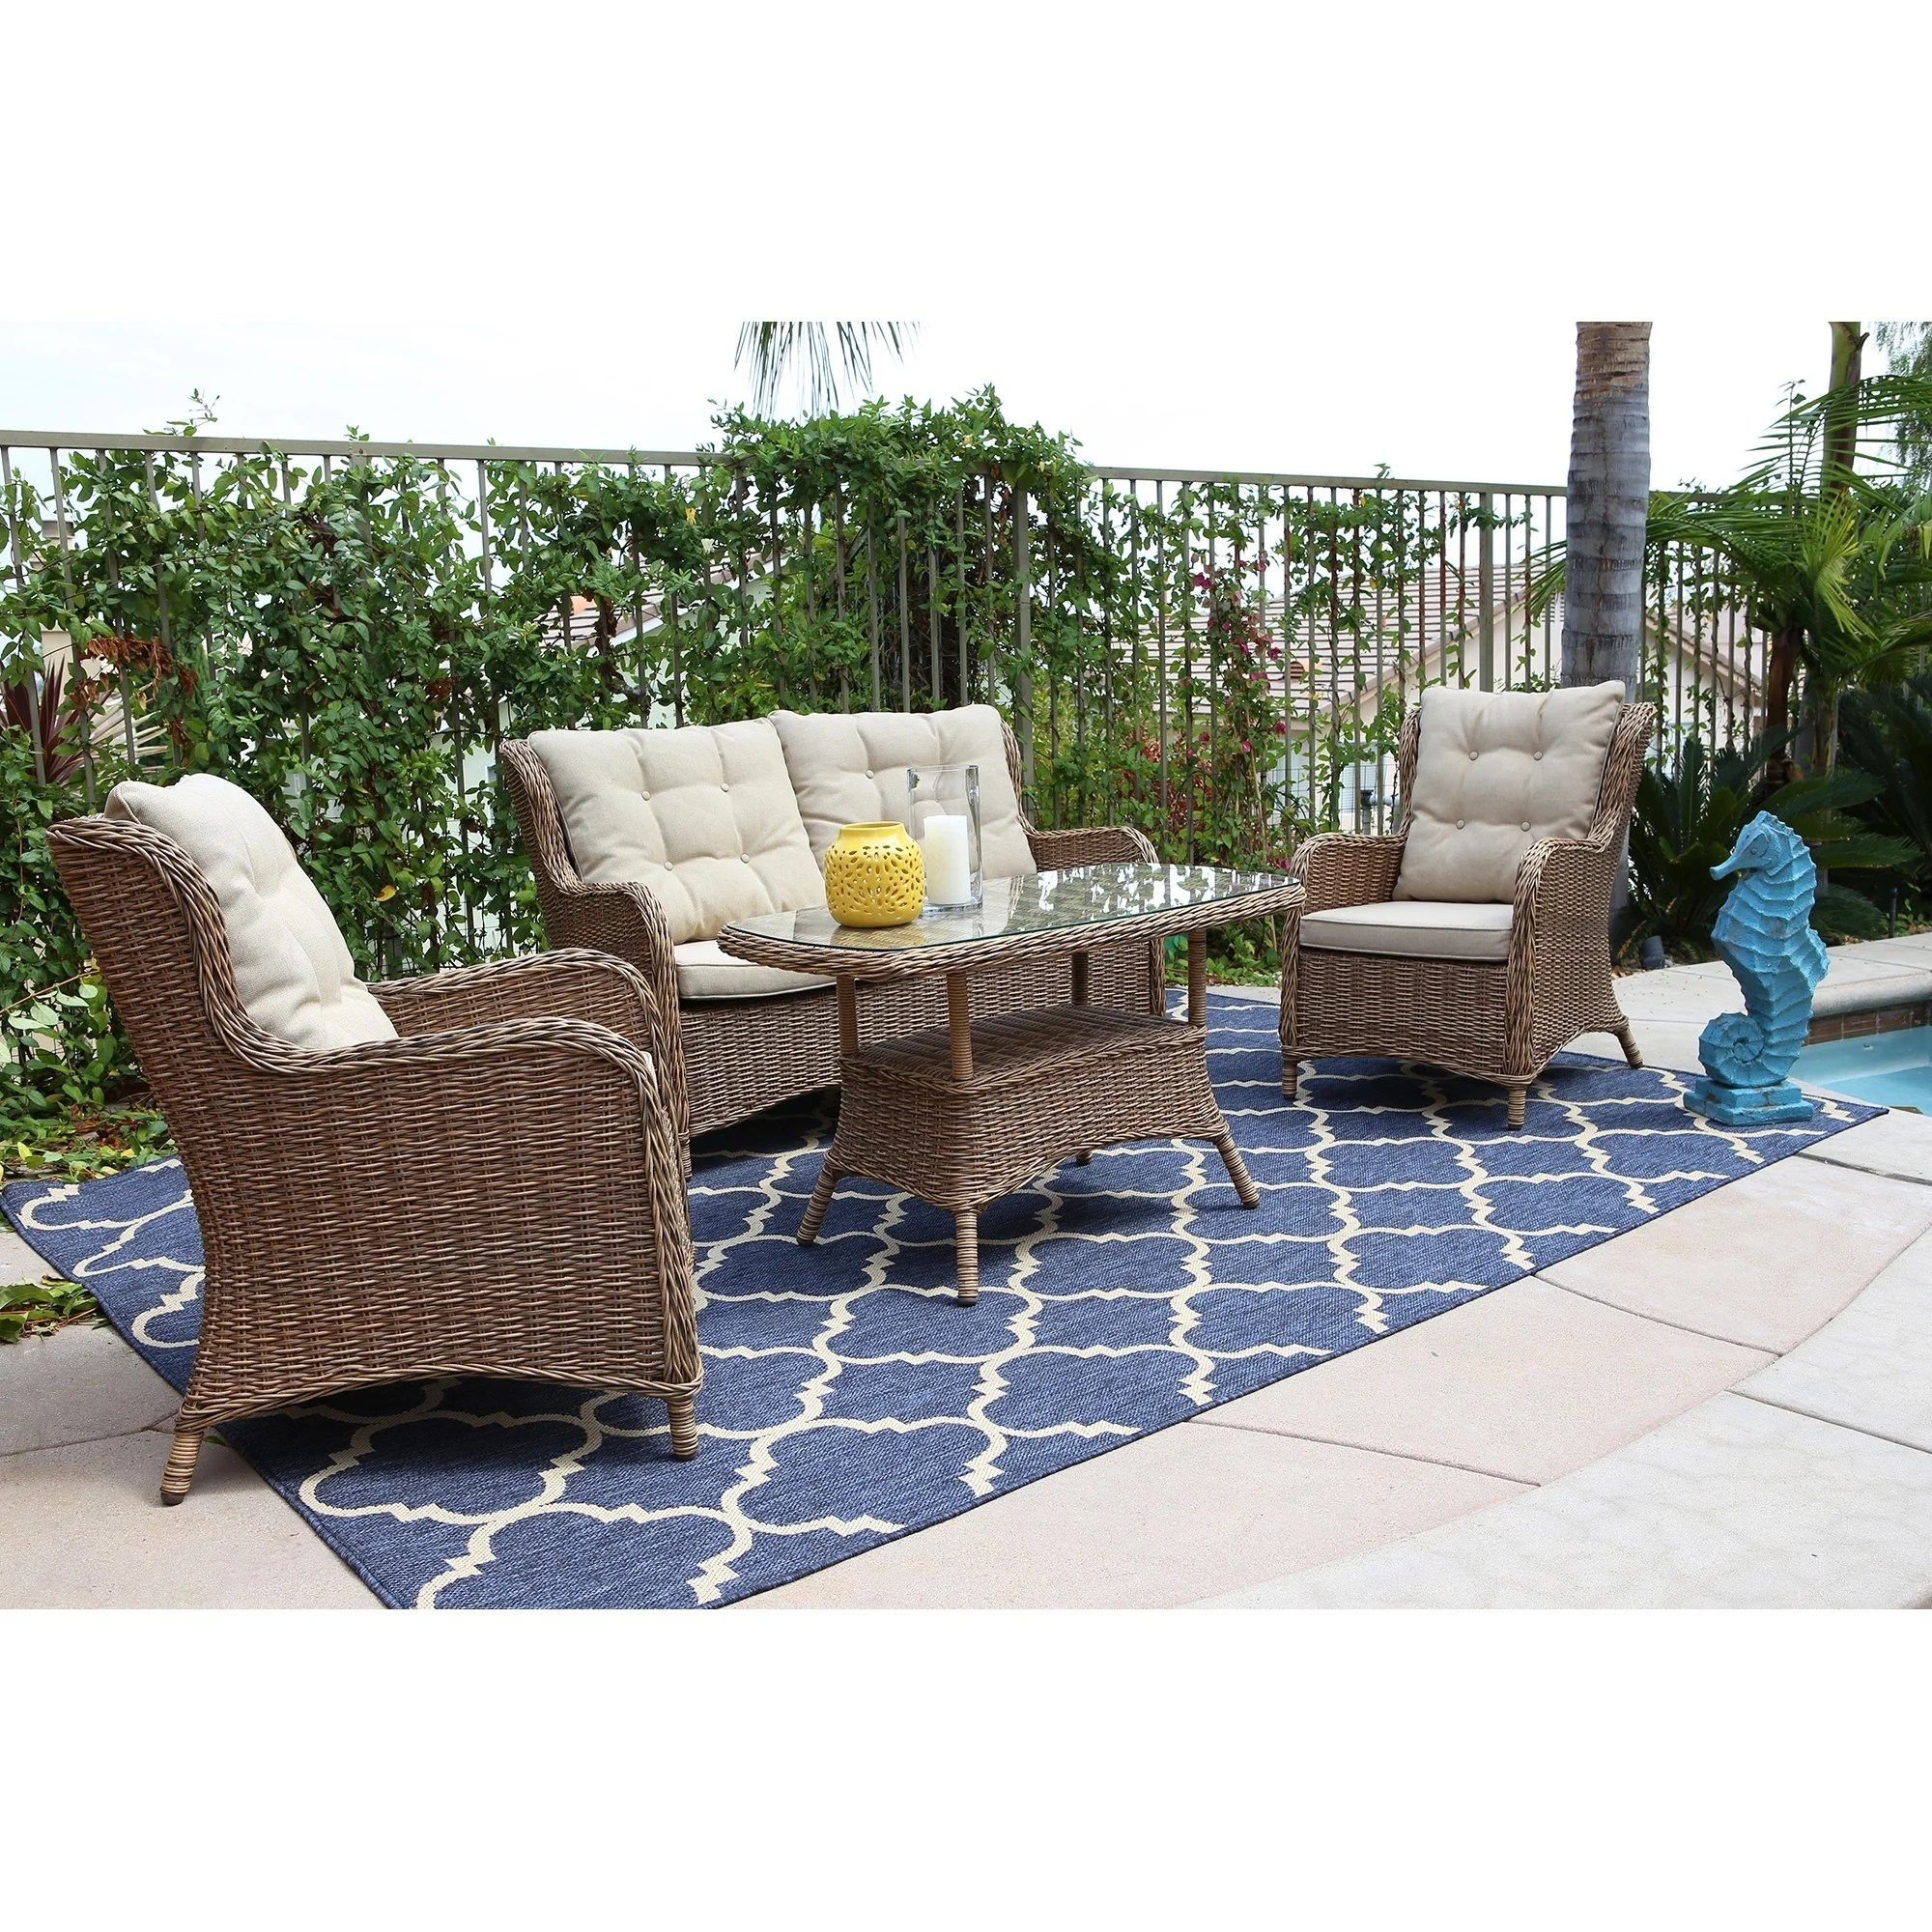 Shop Canterbury 4 Piece Outdoor Wicker Conversation Set Cream Cushions Overstock 17740826 - Royal Garden Furniture Clearance